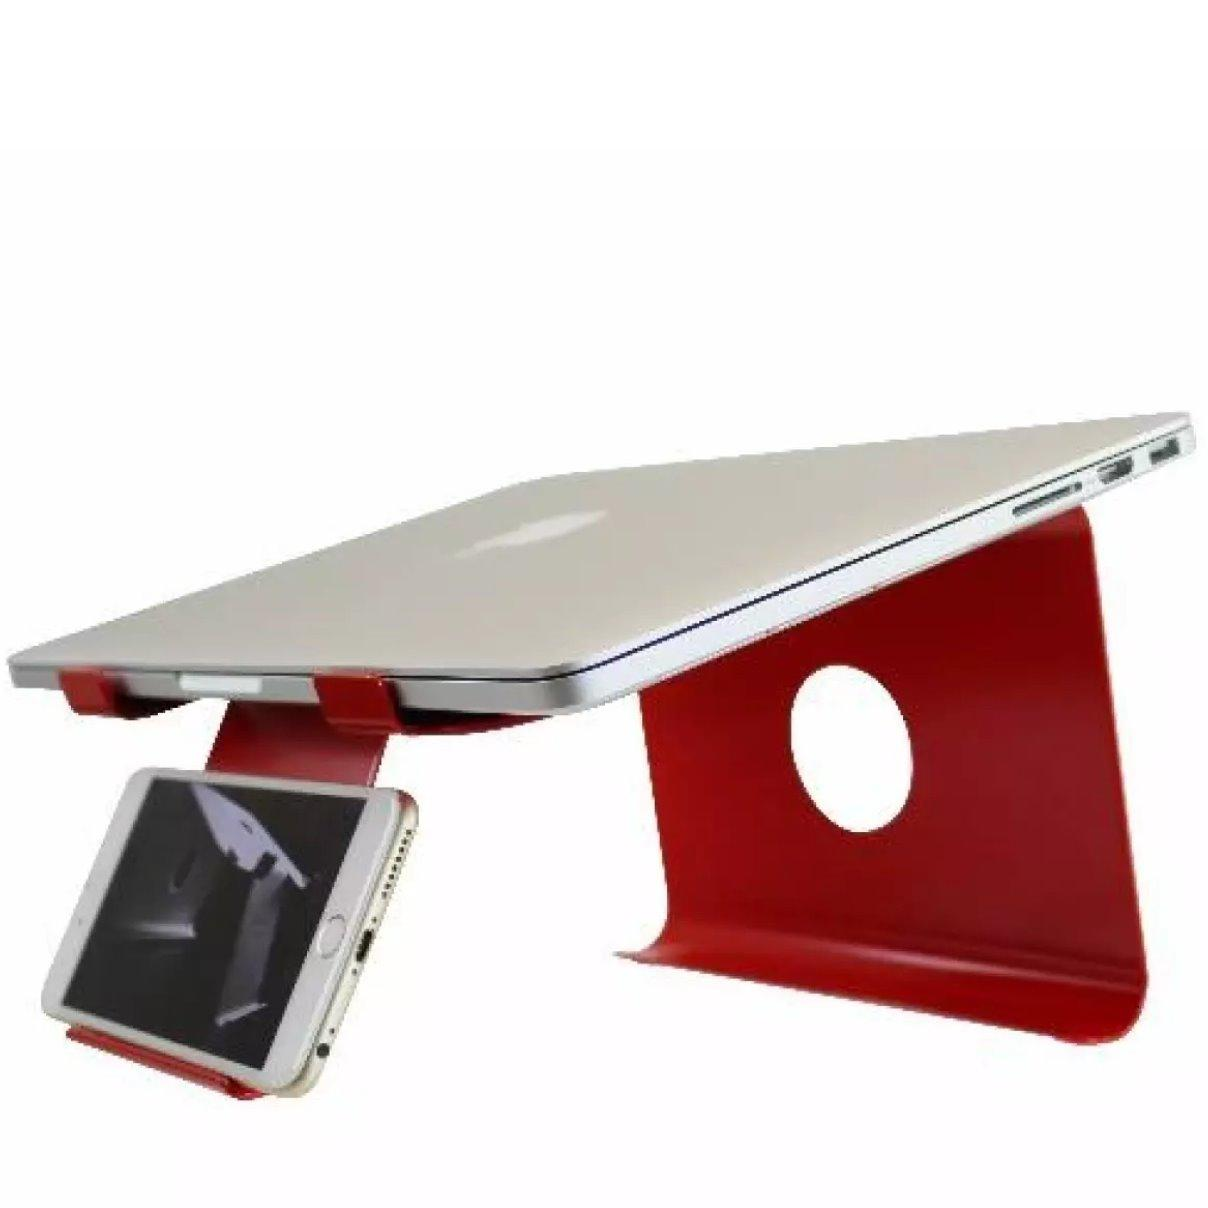 DiiZiGN THE BEST Laptop Stand with Phone Holder for Notebook, Computer, Macbook, Table, Model N, 6 Colors (Red)